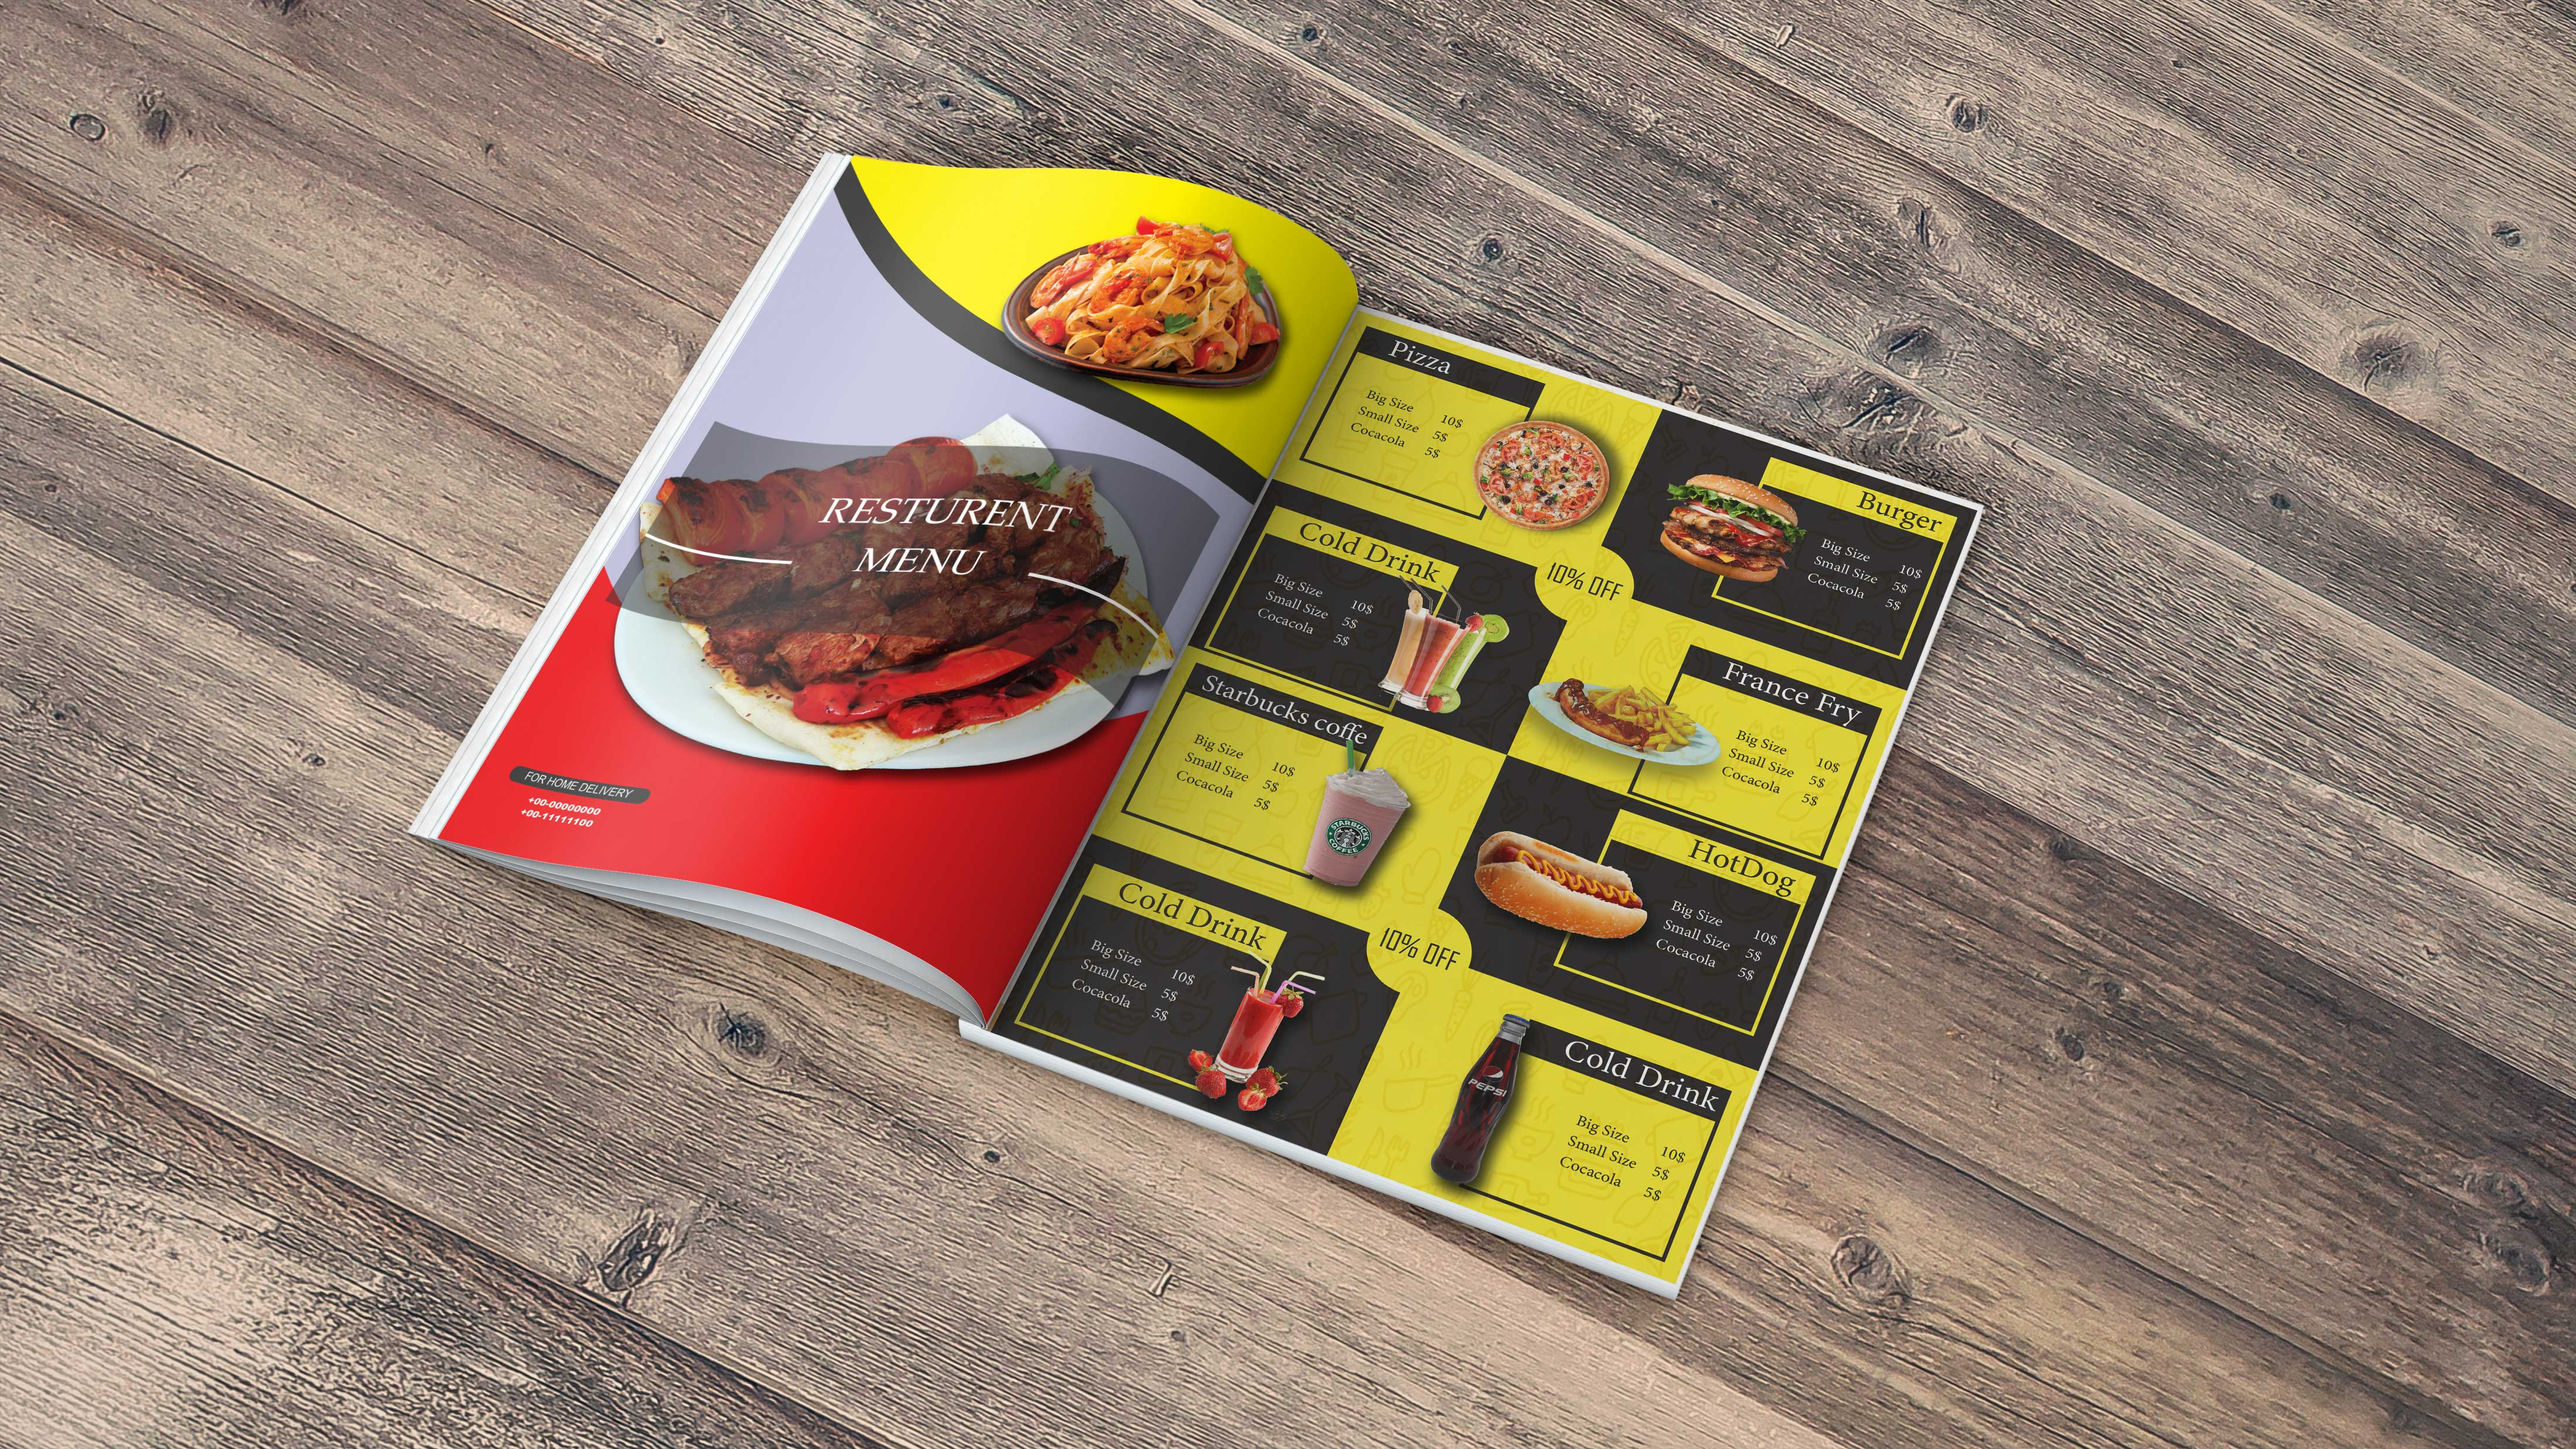 Amazing resturent menu and catalogue design